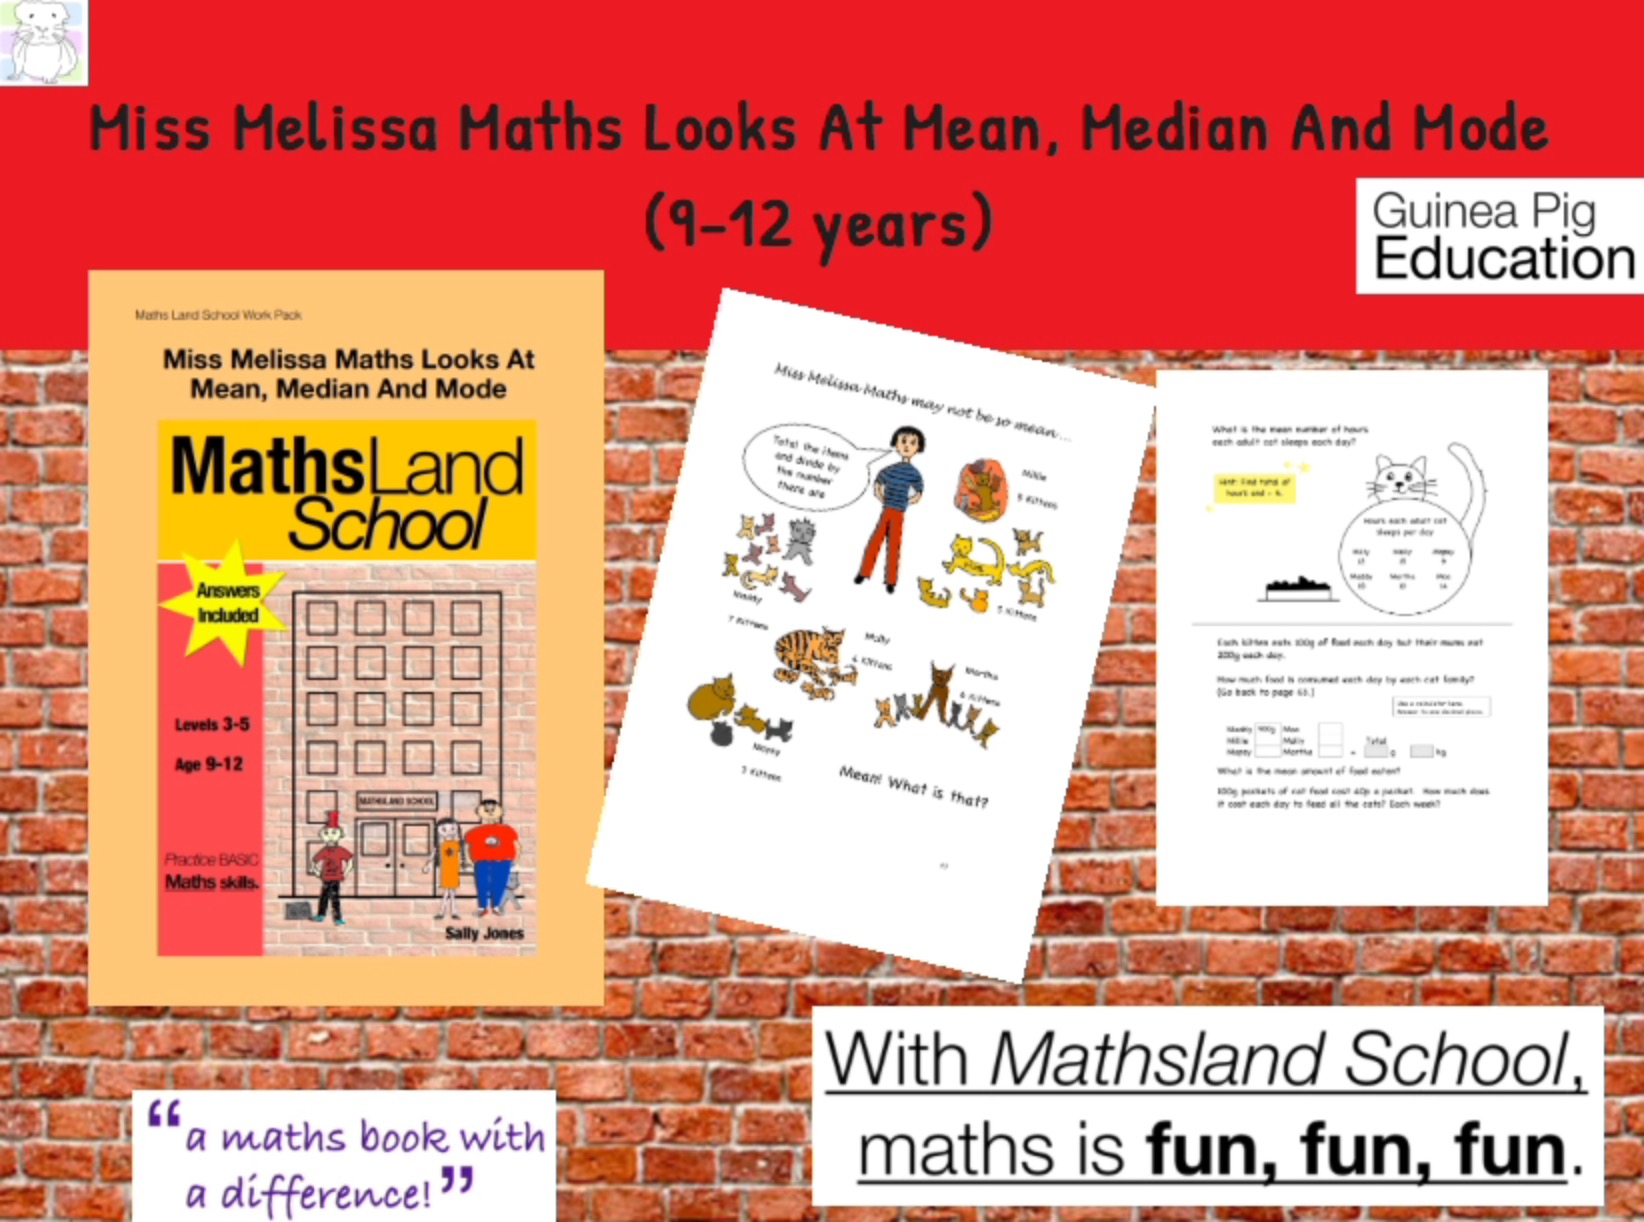 Miss Melissa Maths Looks At Mean, Median And Mode (9-12 years)